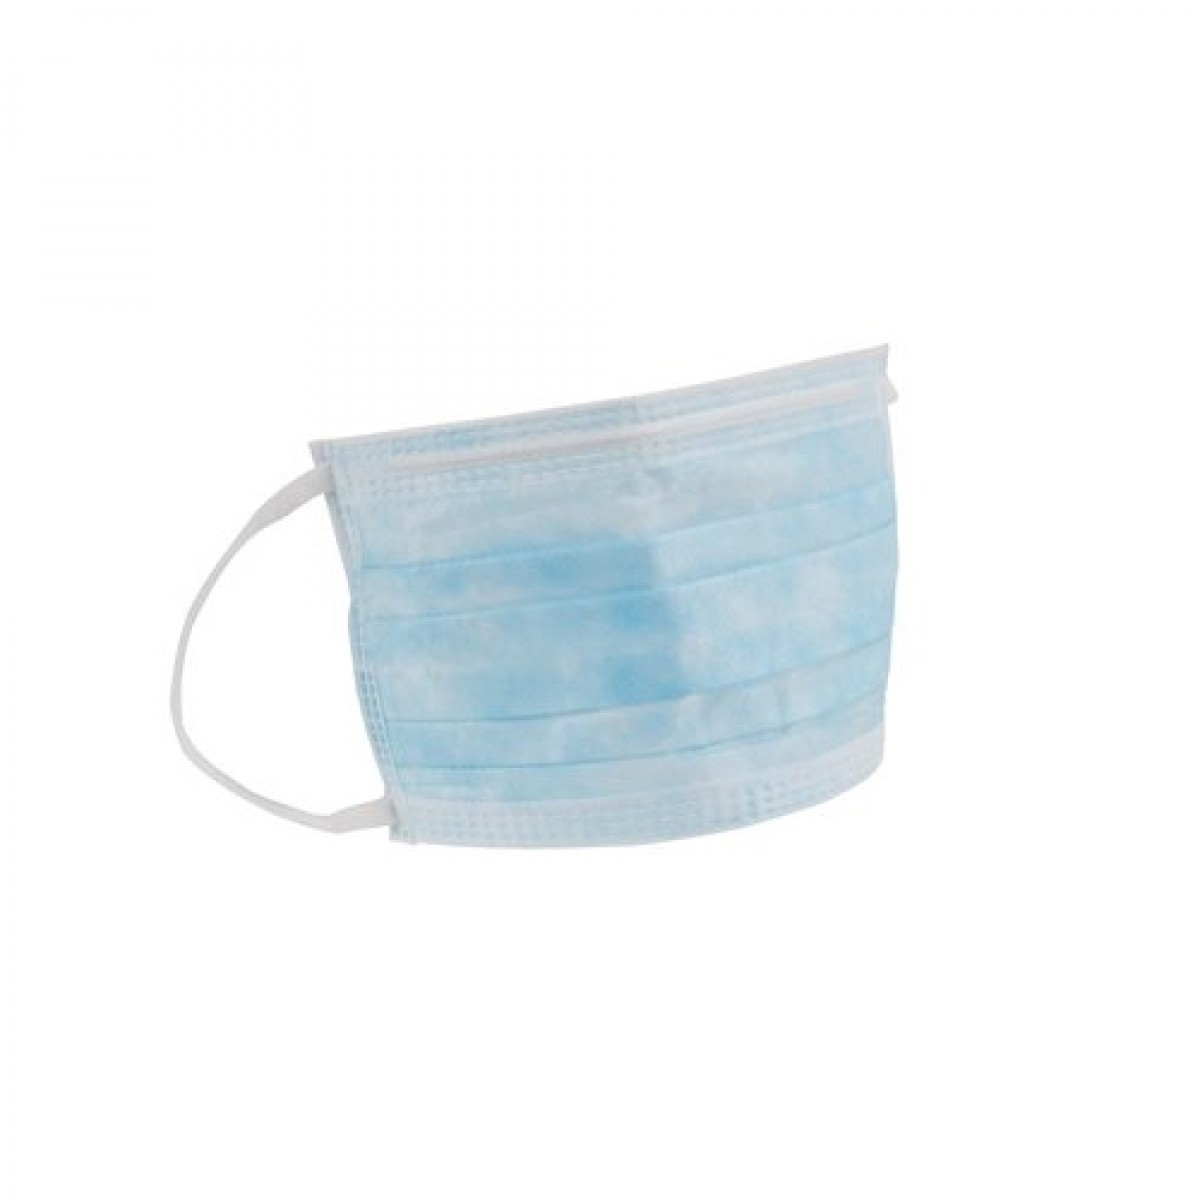 3m surgical mask earloop